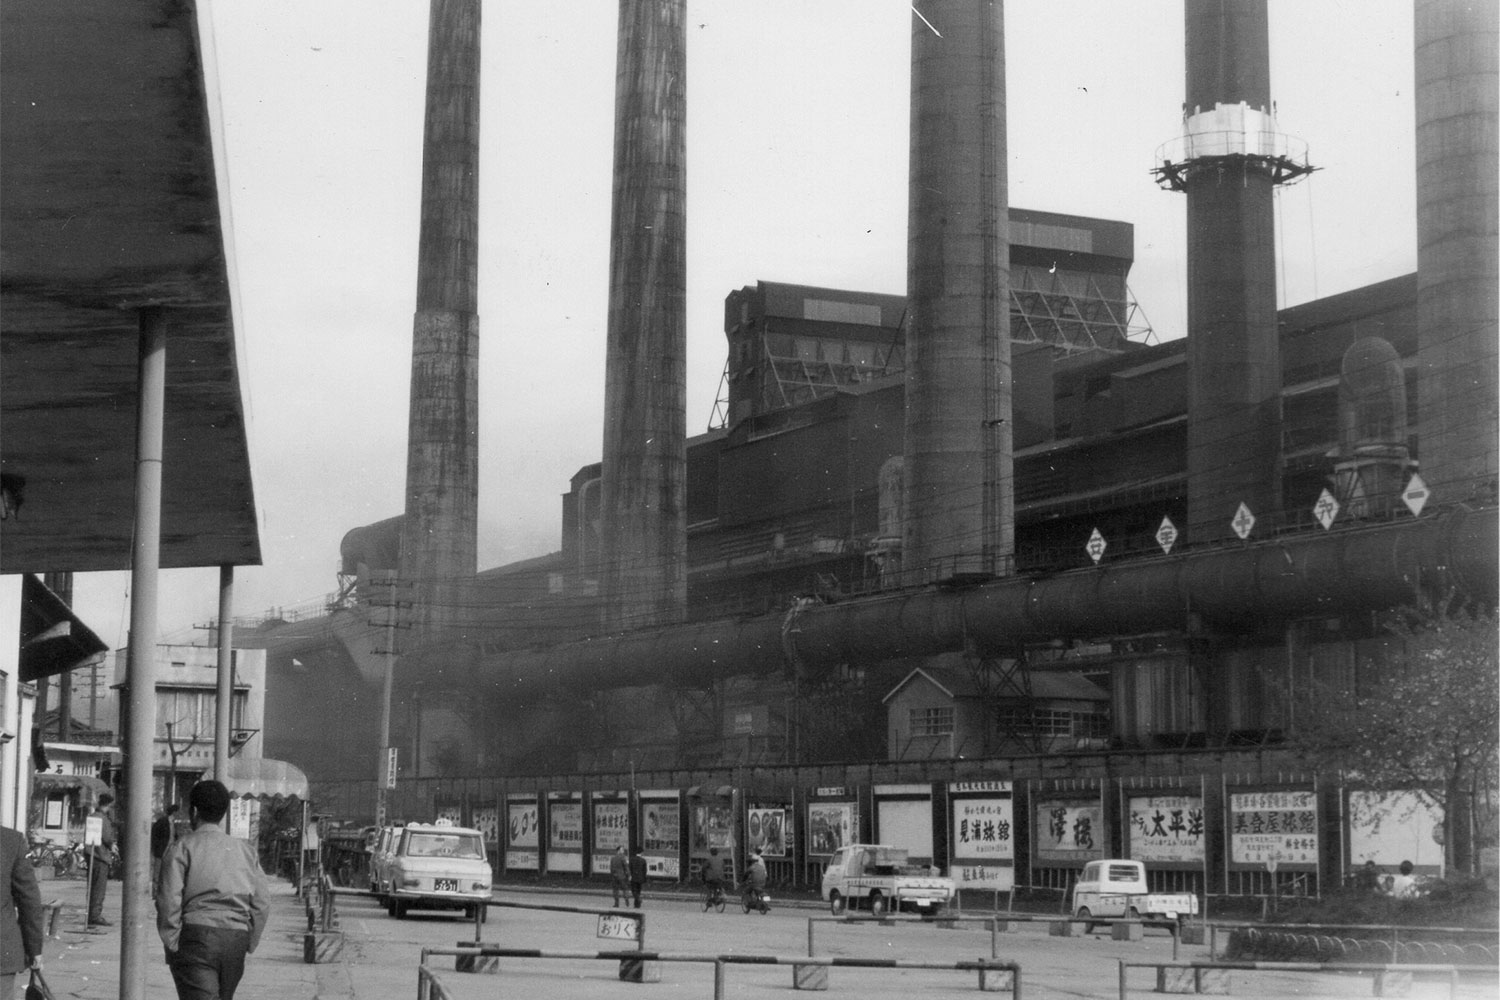 Kamaishi Steelworks in front of Kamaishi Station in the 1960s.